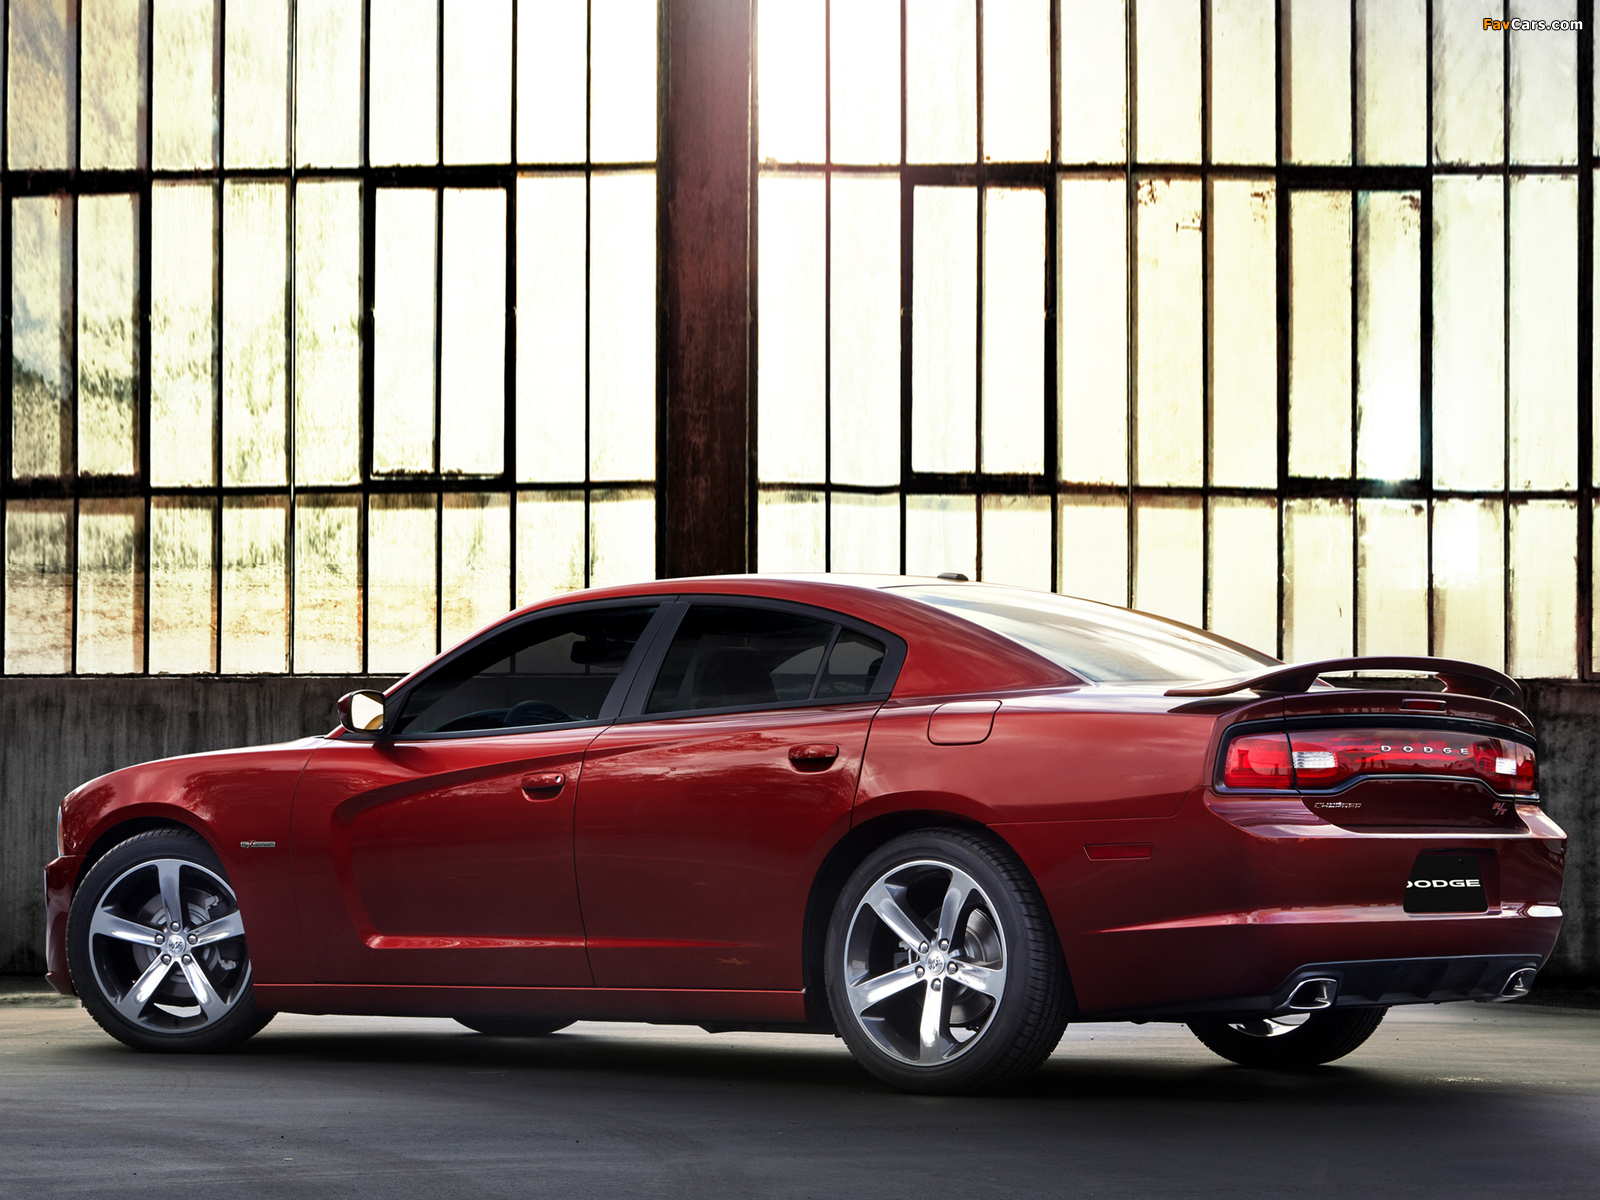 Dodge Charger R/T 100th Anniversary (LD) 2014 wallpapers (1600 x 1200)